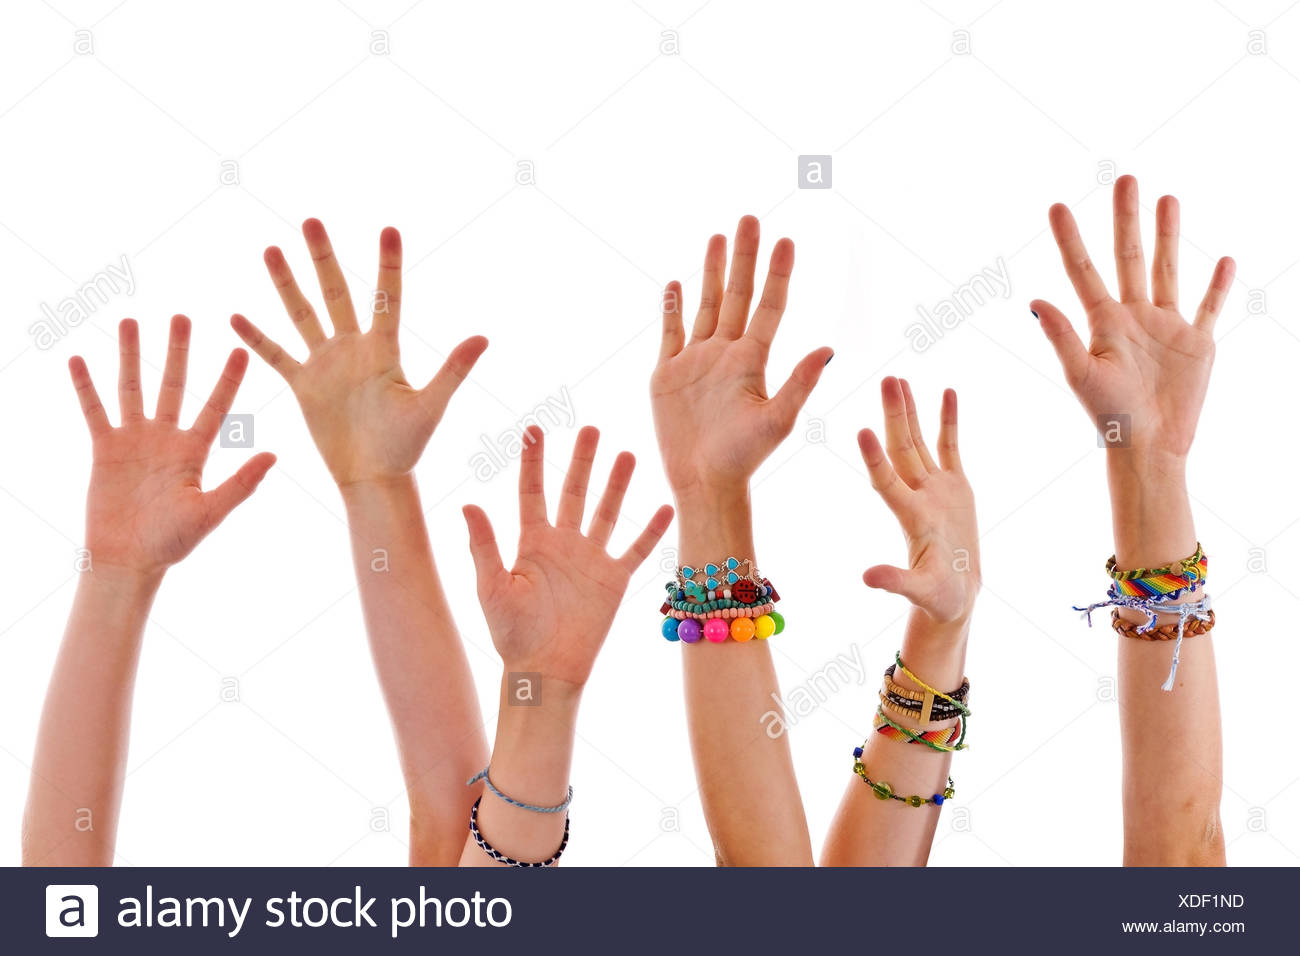 Hands up - Stock Image